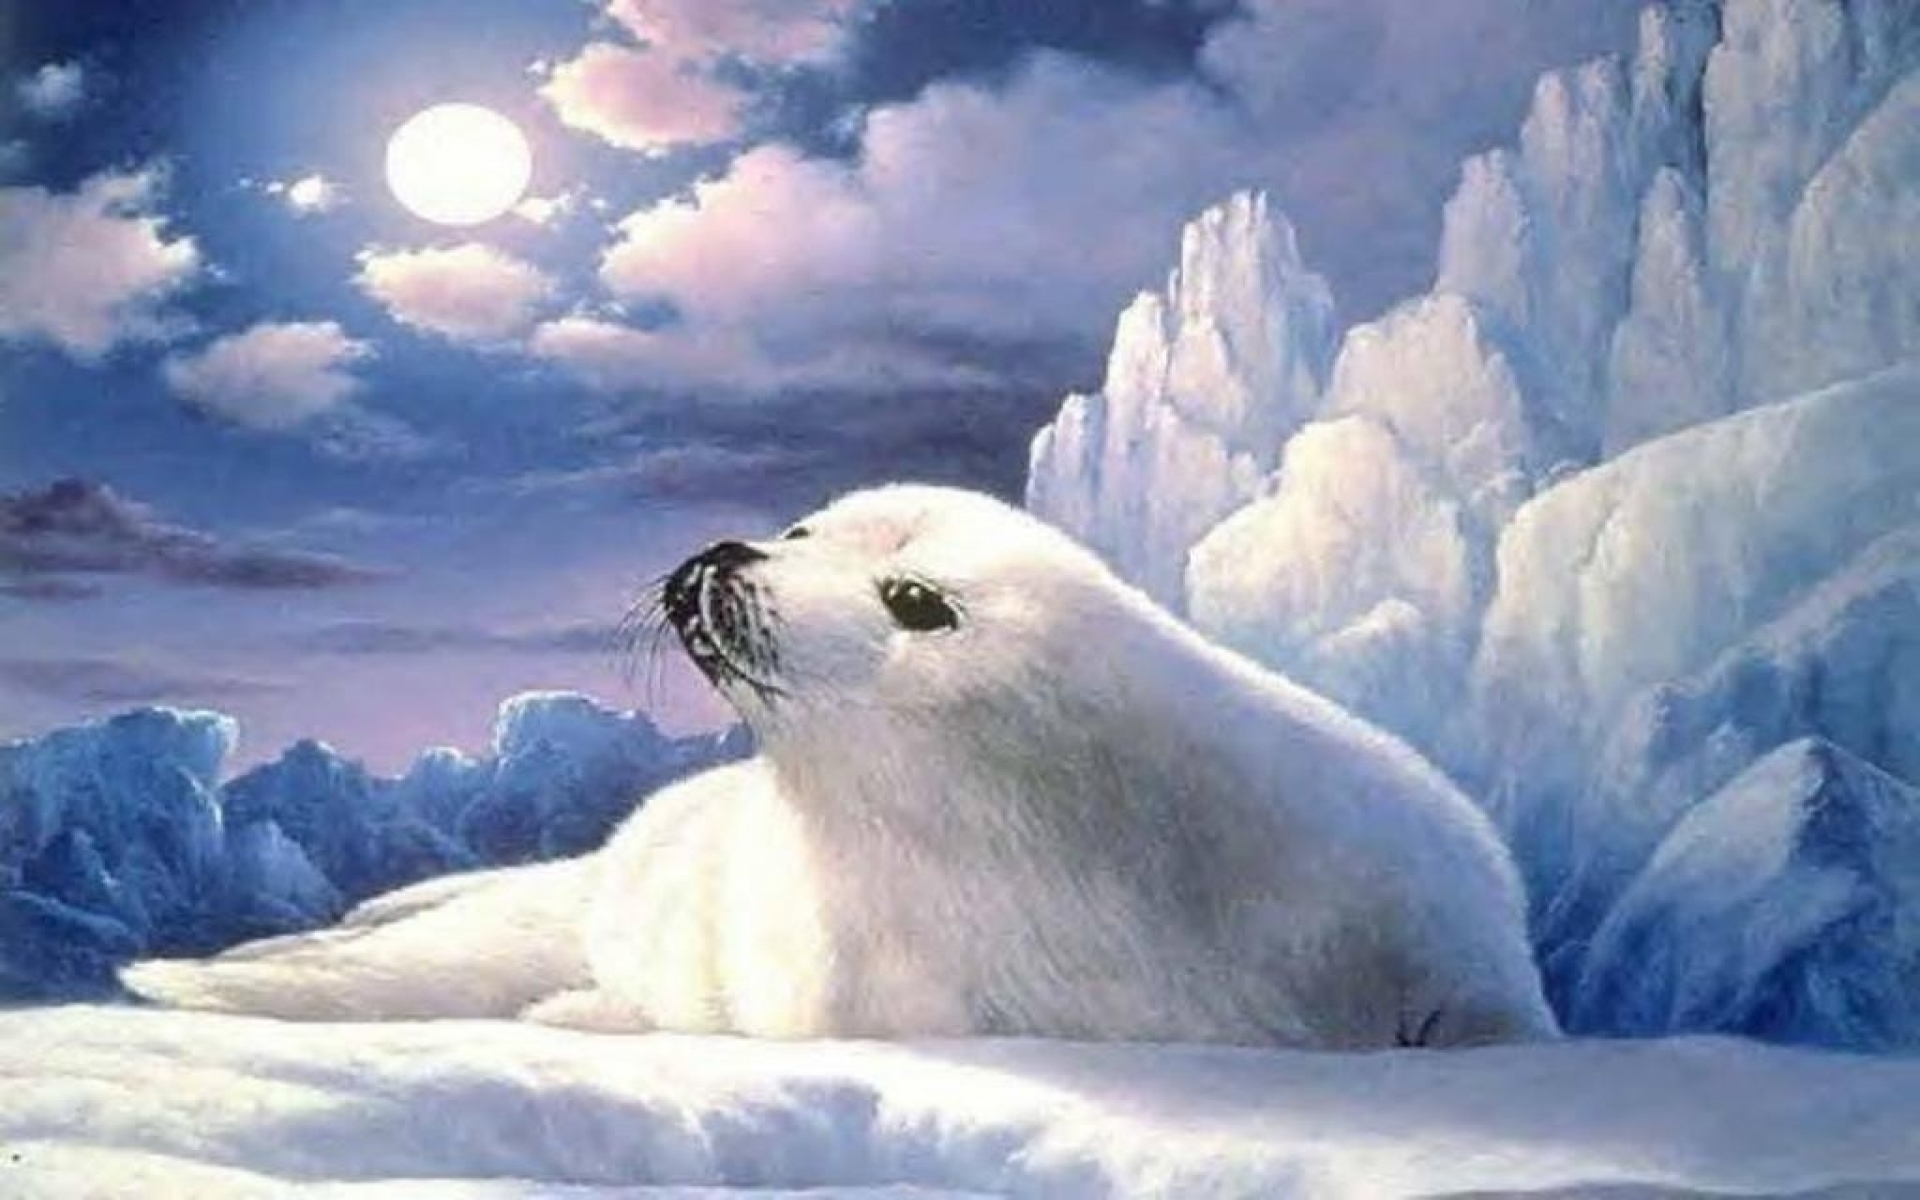 Cute Lonely Seal Ice Berg Moon Wallpapers Cute Lonely